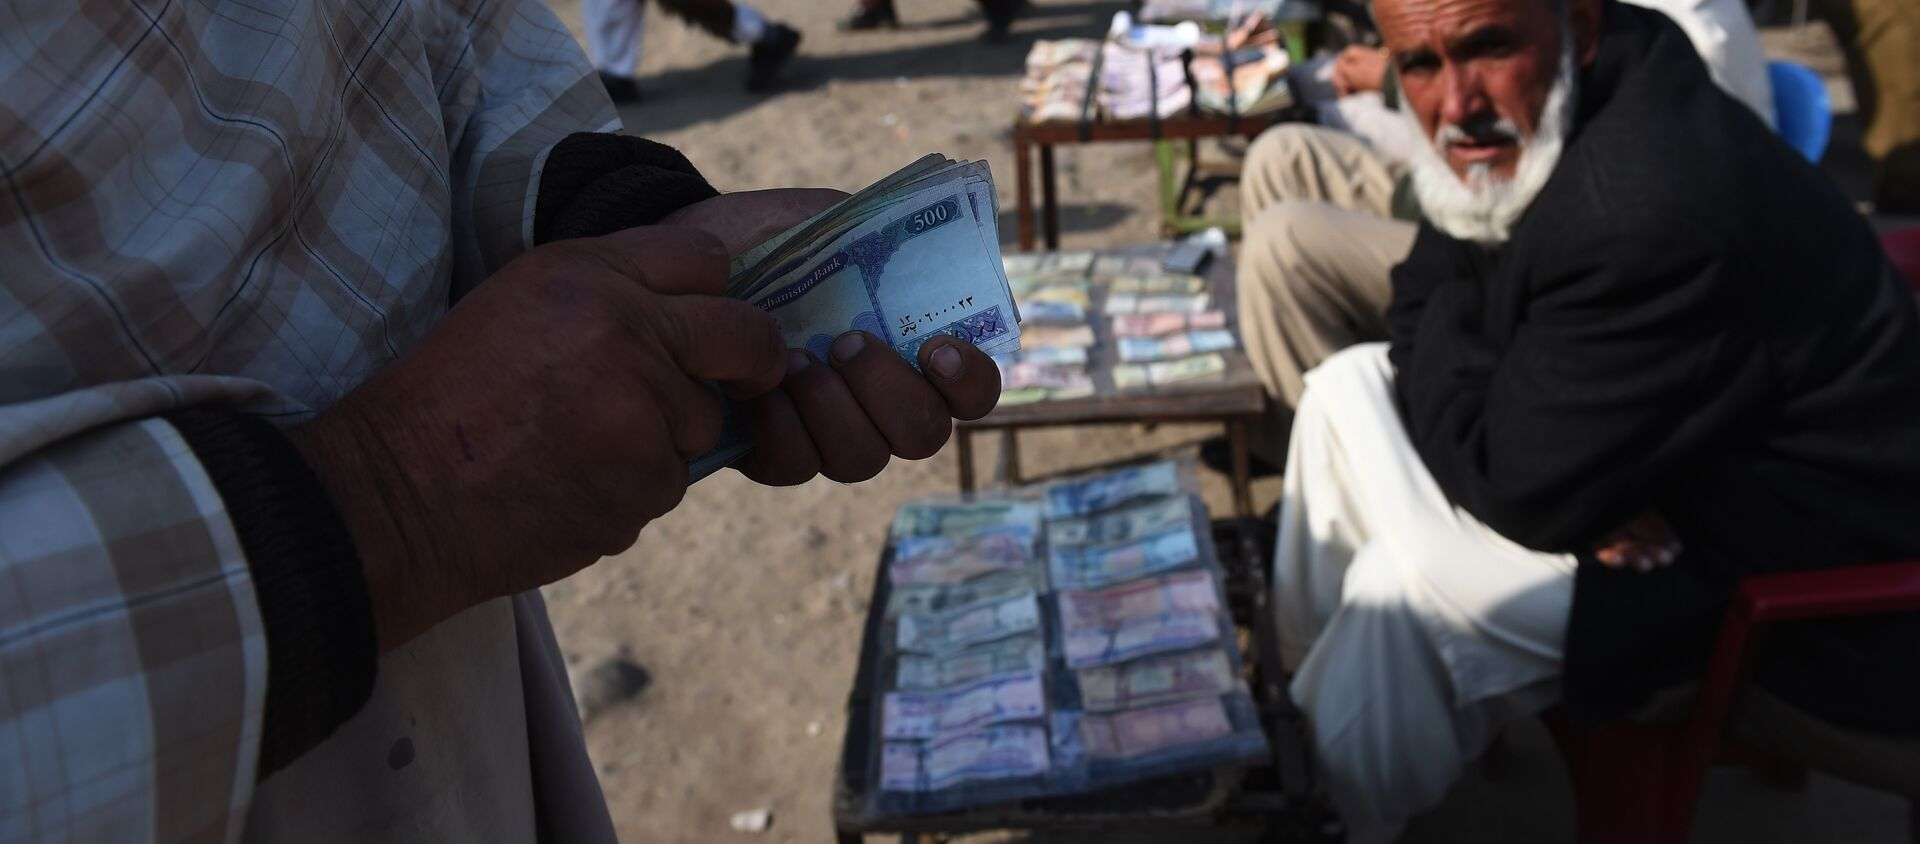 In this photograph taken on December 29, 2014, an Afghan customer (L) counts his Afghani currency notes at a currency exchange market along the roadside in Kabul - Sputnik International, 1920